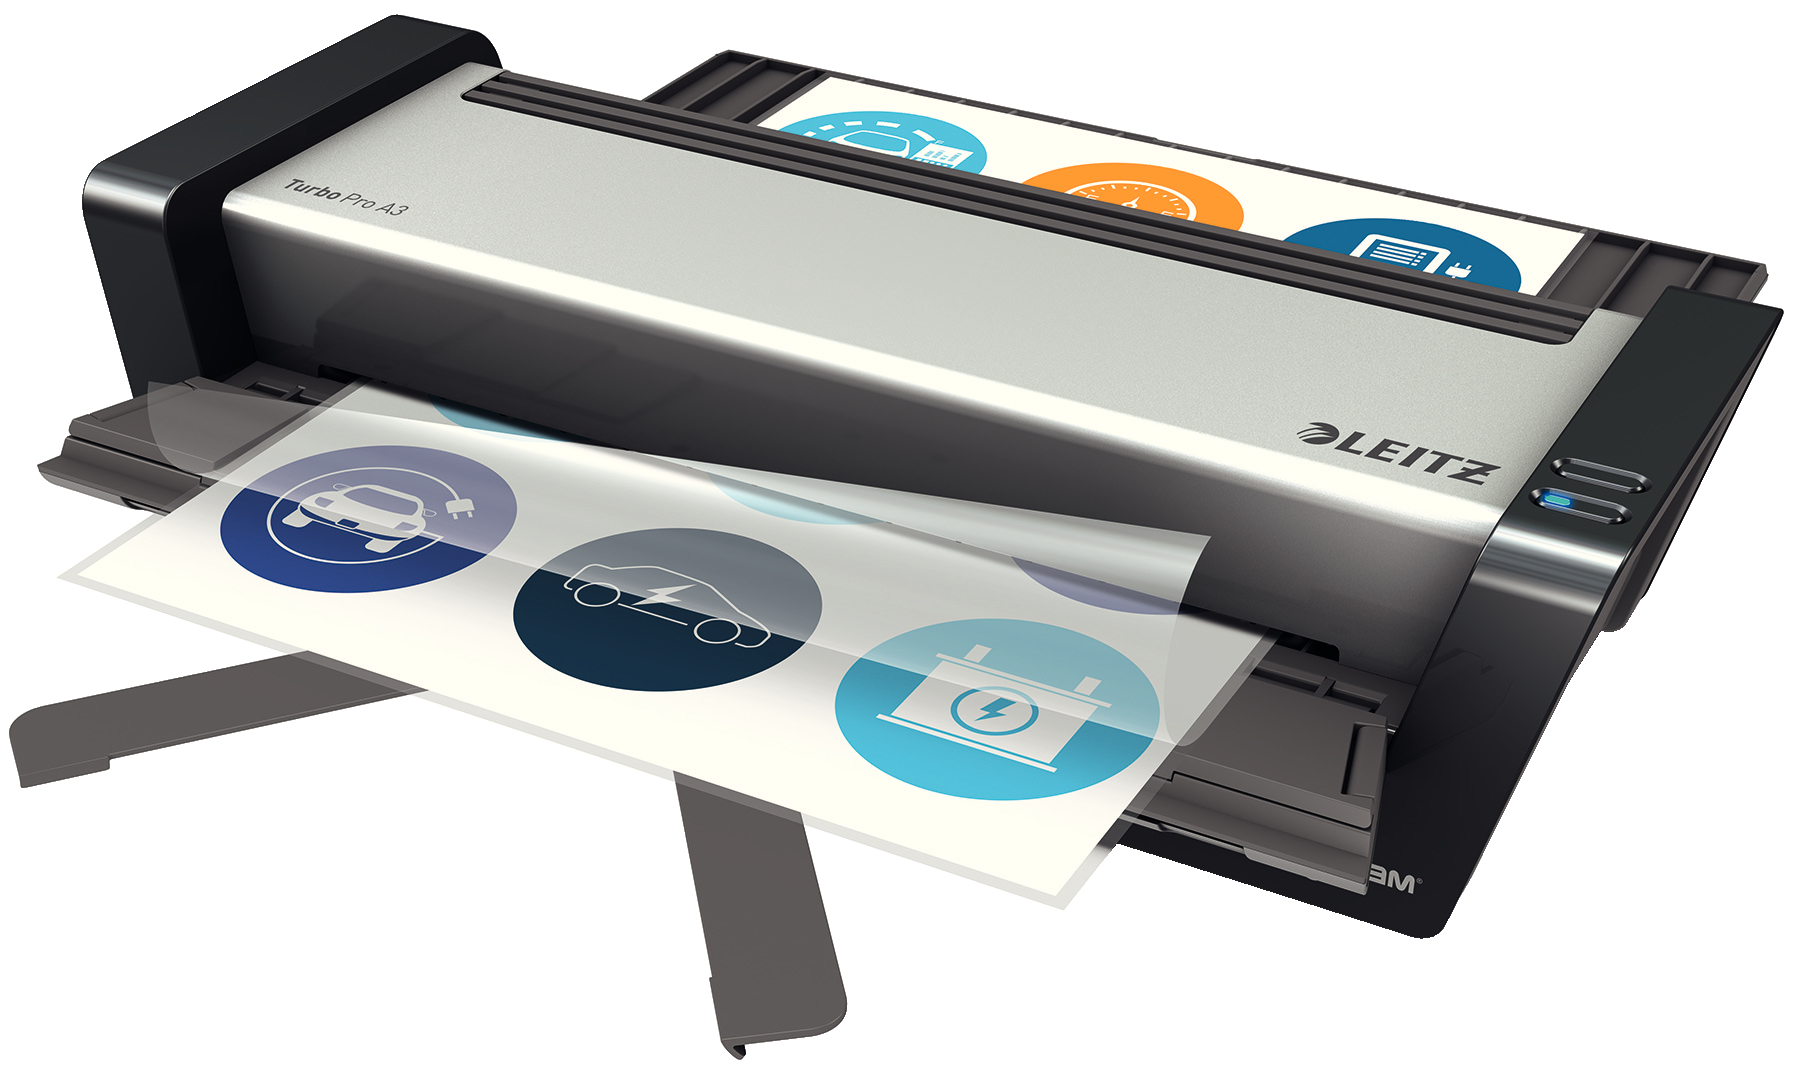 Lamineringsmask. iLAM Touch Turbo Pro A3